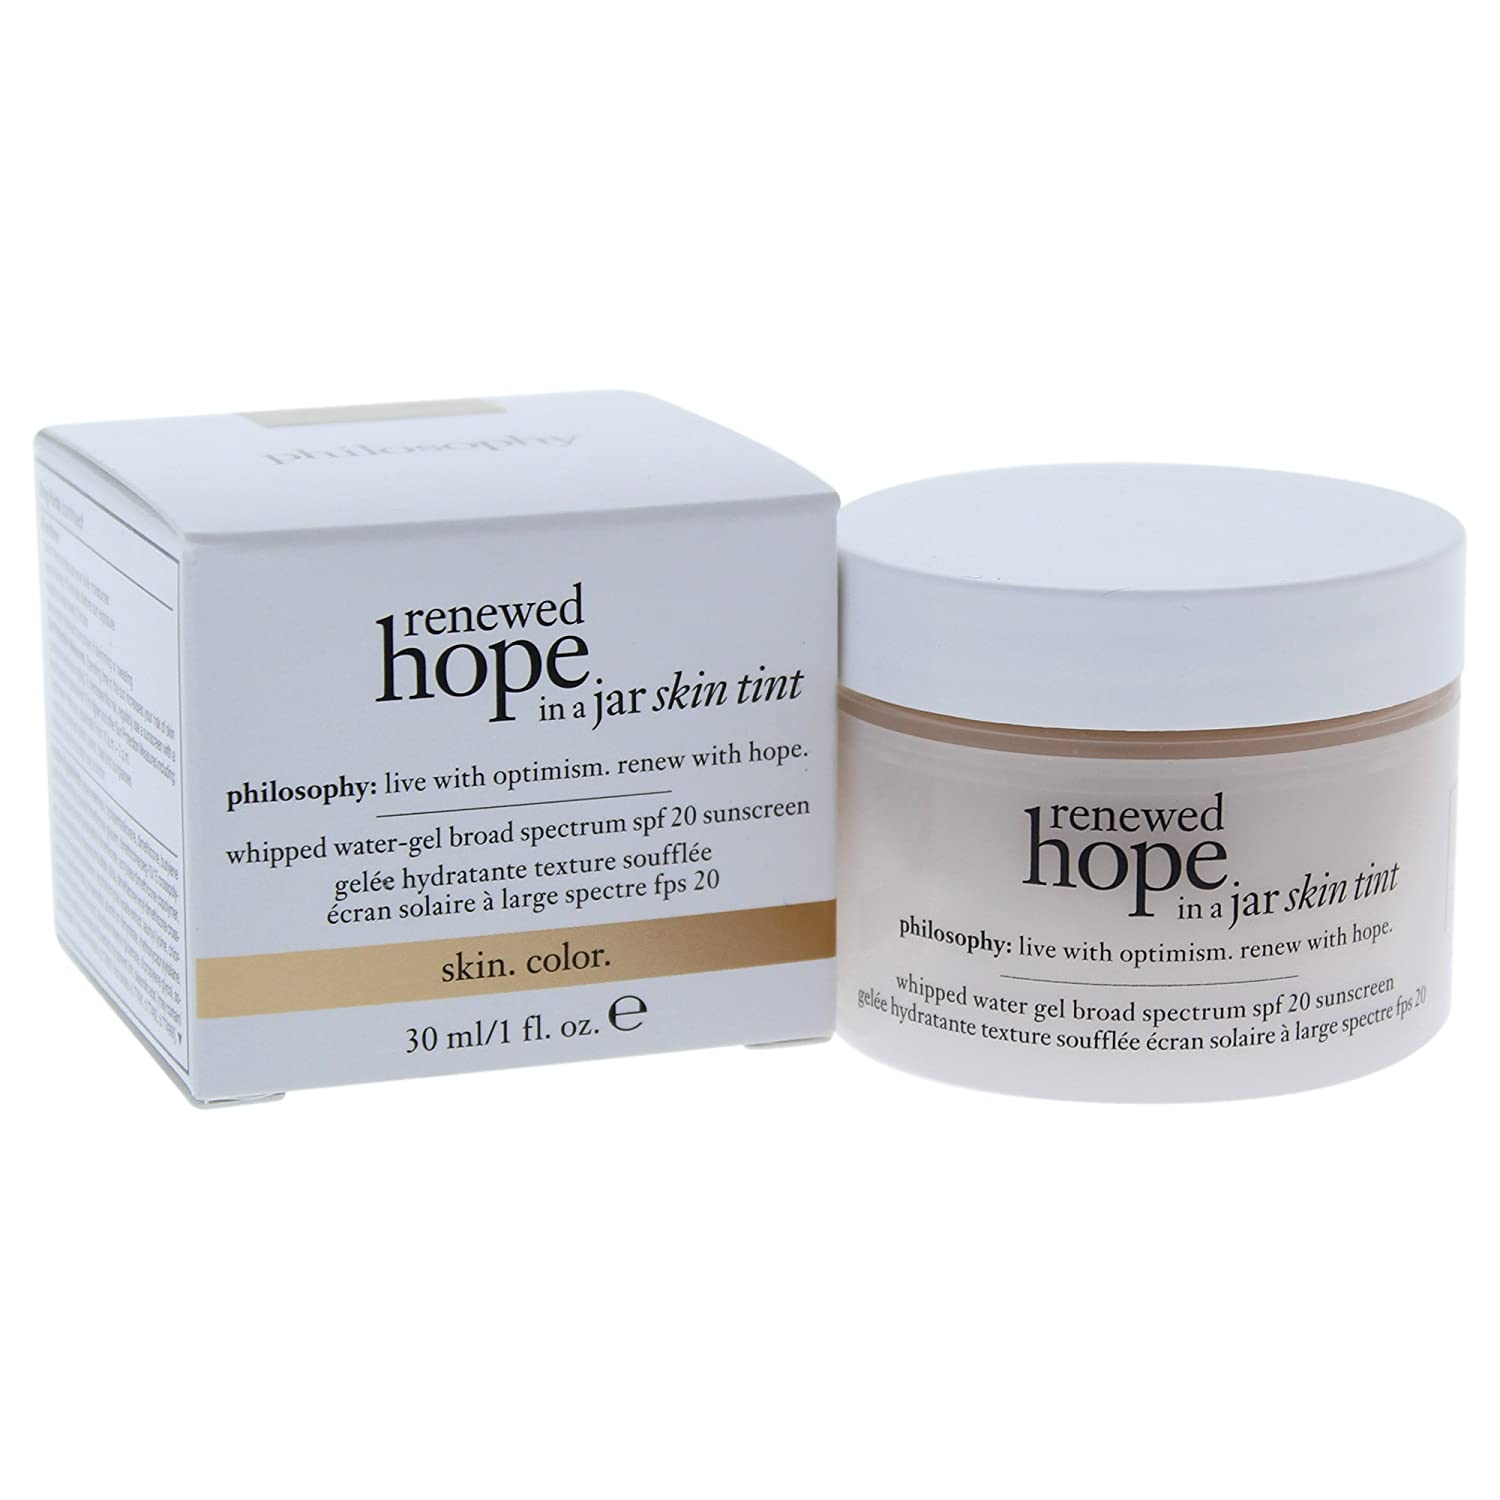 Philosophy Renewed Hope in a Jar Skin Tint Spf 20, 5.5 Beige for Women, 1 Ounce PerfumeWorldWide Inc. Drop Ship 3614223411351